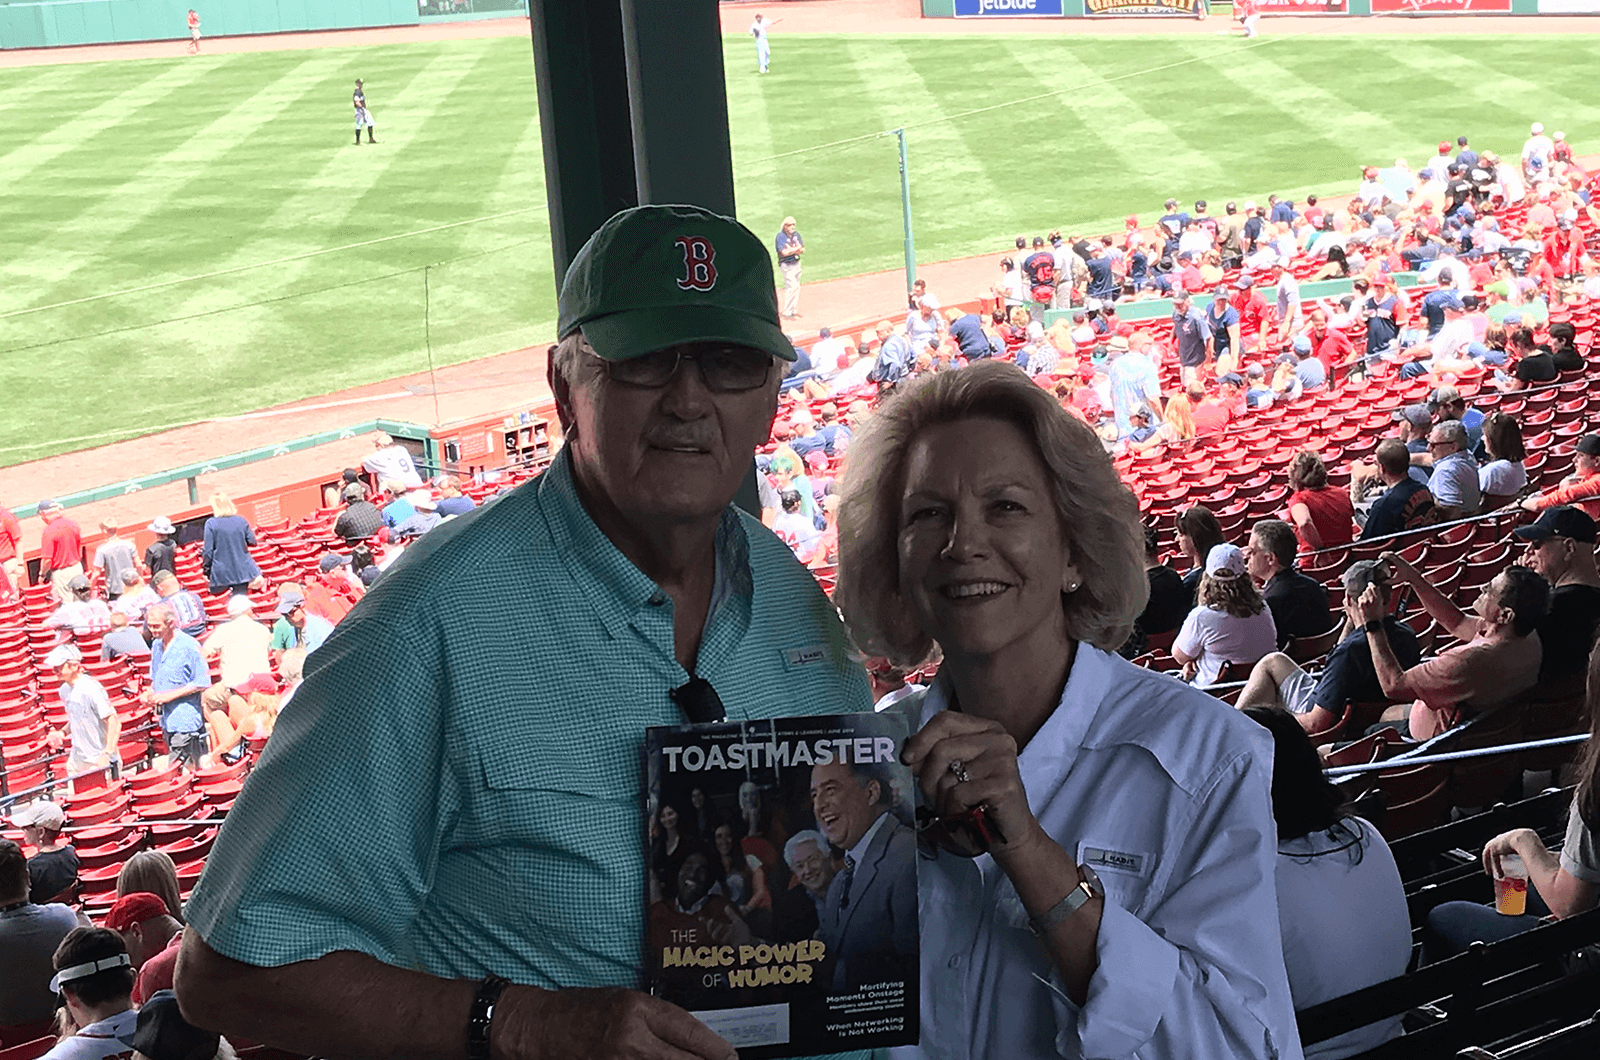 Distinguished Toastmasters Barbara and George Strasdas of Port St. Lucie, Florida, attend a Boston Red Sox baseball game in Boston, Massachusetts. Fenway Park has been home to the professional baseball team since 1912, making it the oldest ballpark in Major League Baseball.